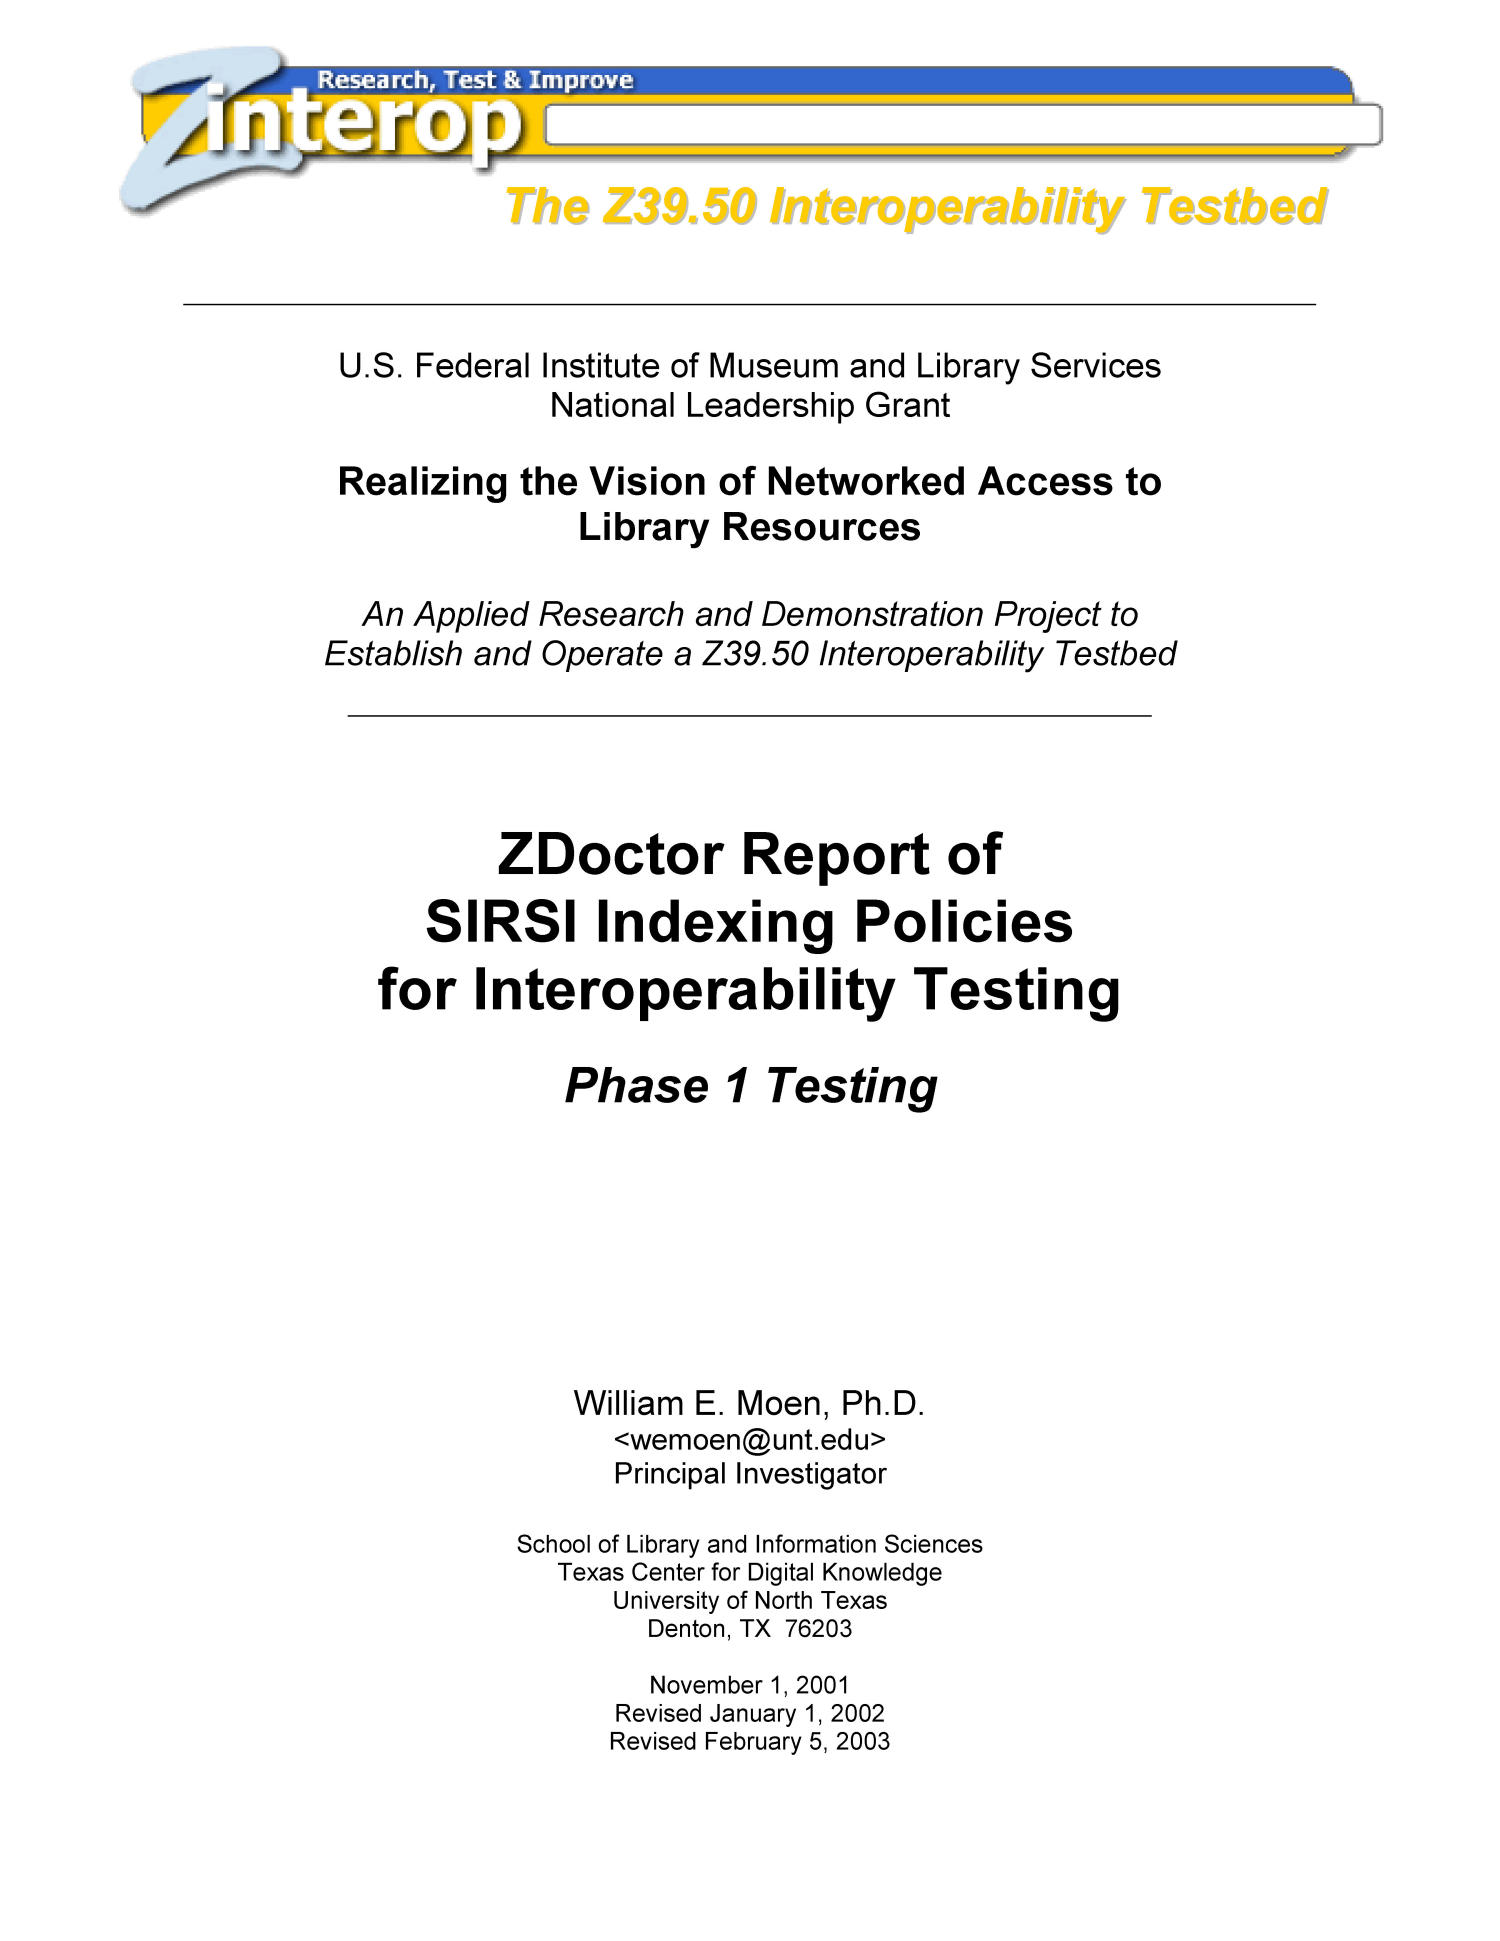 ZDoctor Report of SIRSI Indexing Policies for Interoperability Testing: Phase 1 Testing                                                                                                      Title Page